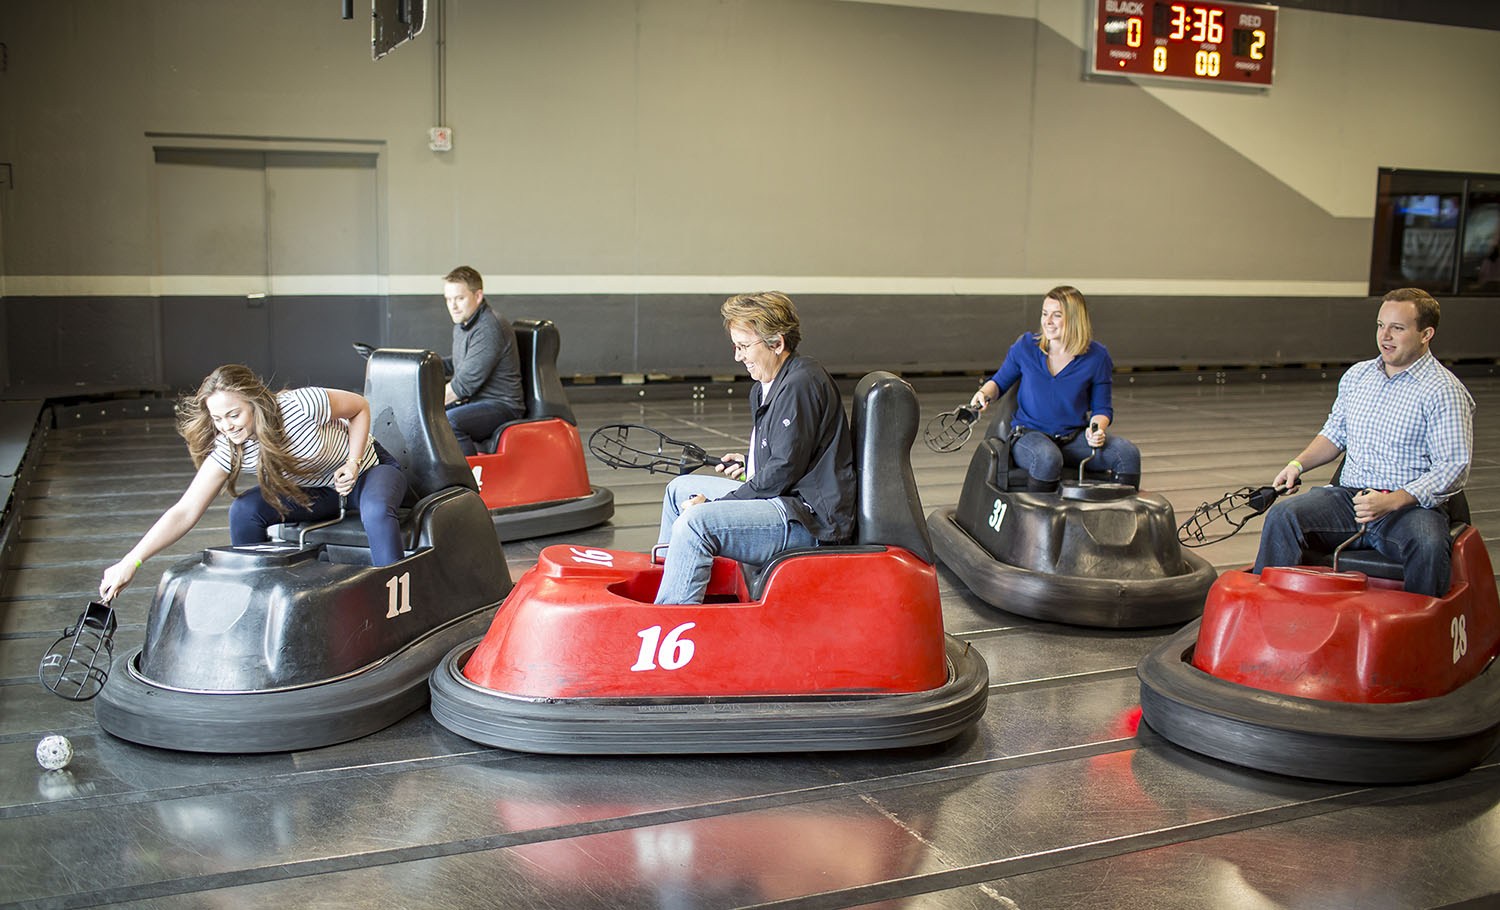 WhirlyBall Vernon Hills - Click to Enlarge